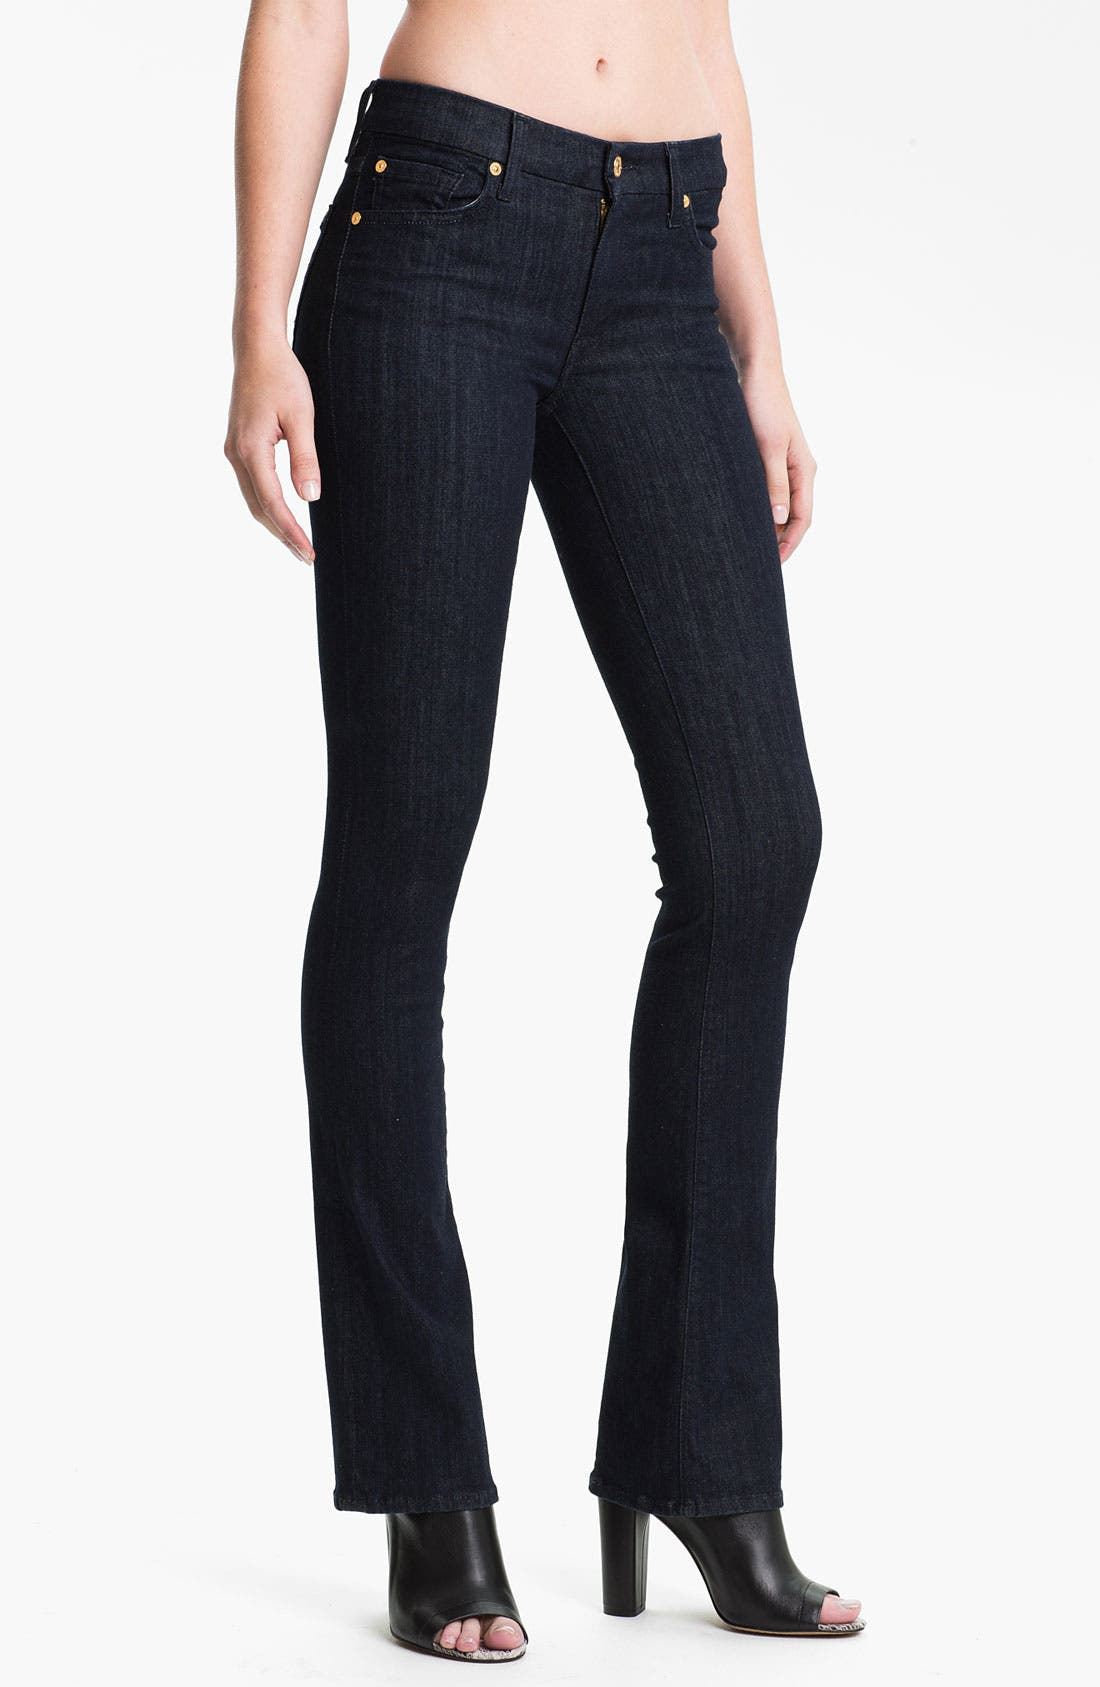 Alternate Image 1 Selected - 7 For All Mankind® 'Kimmie' Bootcut Jeans (Slim Illusion Rinse)